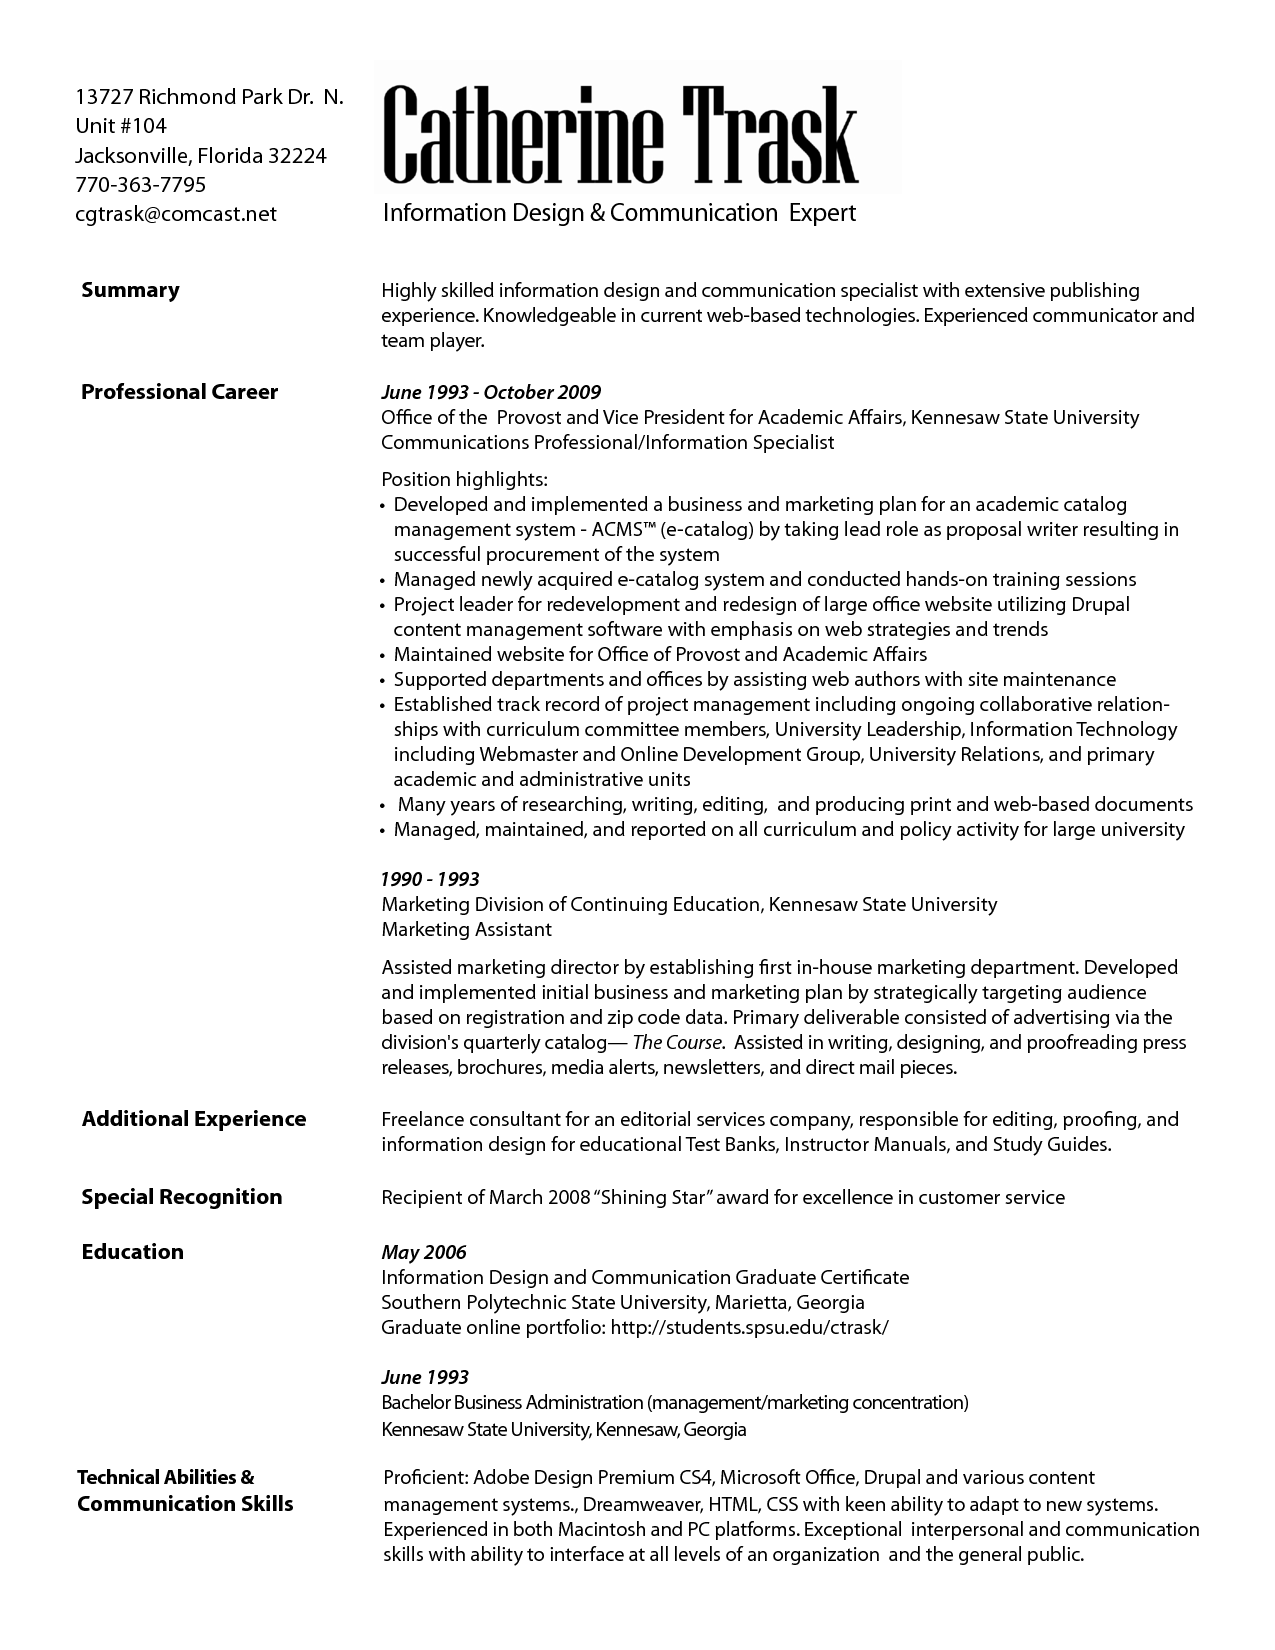 Driller Resume Example Marketing Communication Specialist Resume Resumes